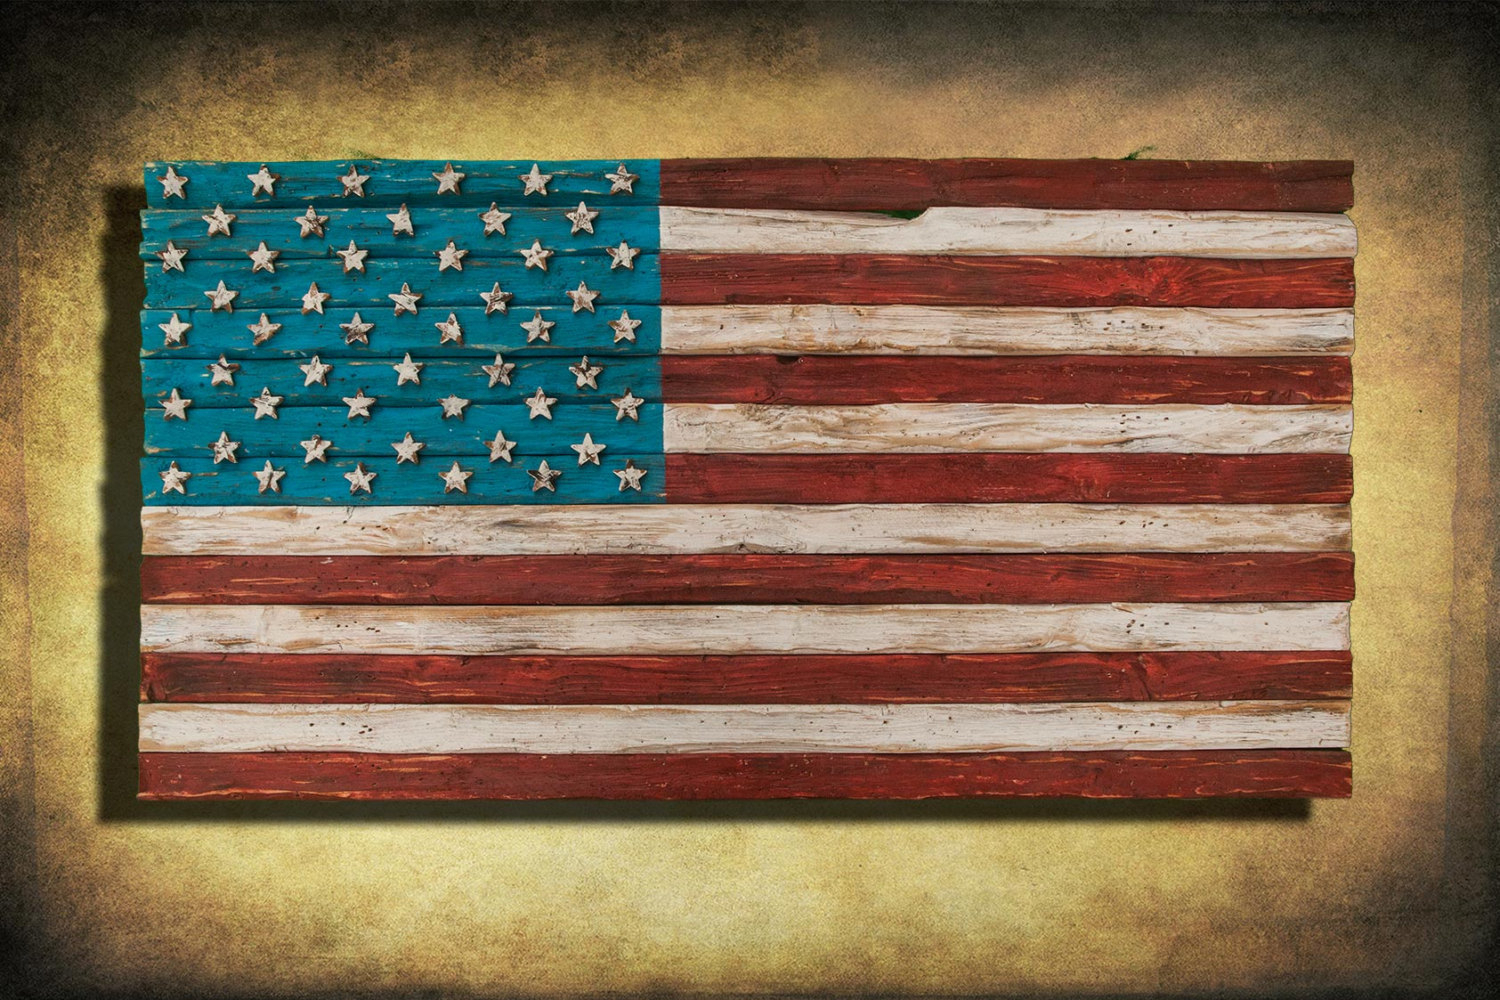 American Flag, Weathered Wood, One Of A Kind, 3D, Wooden, Vintage, Art,  Distressed, Red, Blue, White Patriotic, Wall Art, Usa, Home Decor Regarding American Flag 3D Wall Decor (Image 15 of 30)